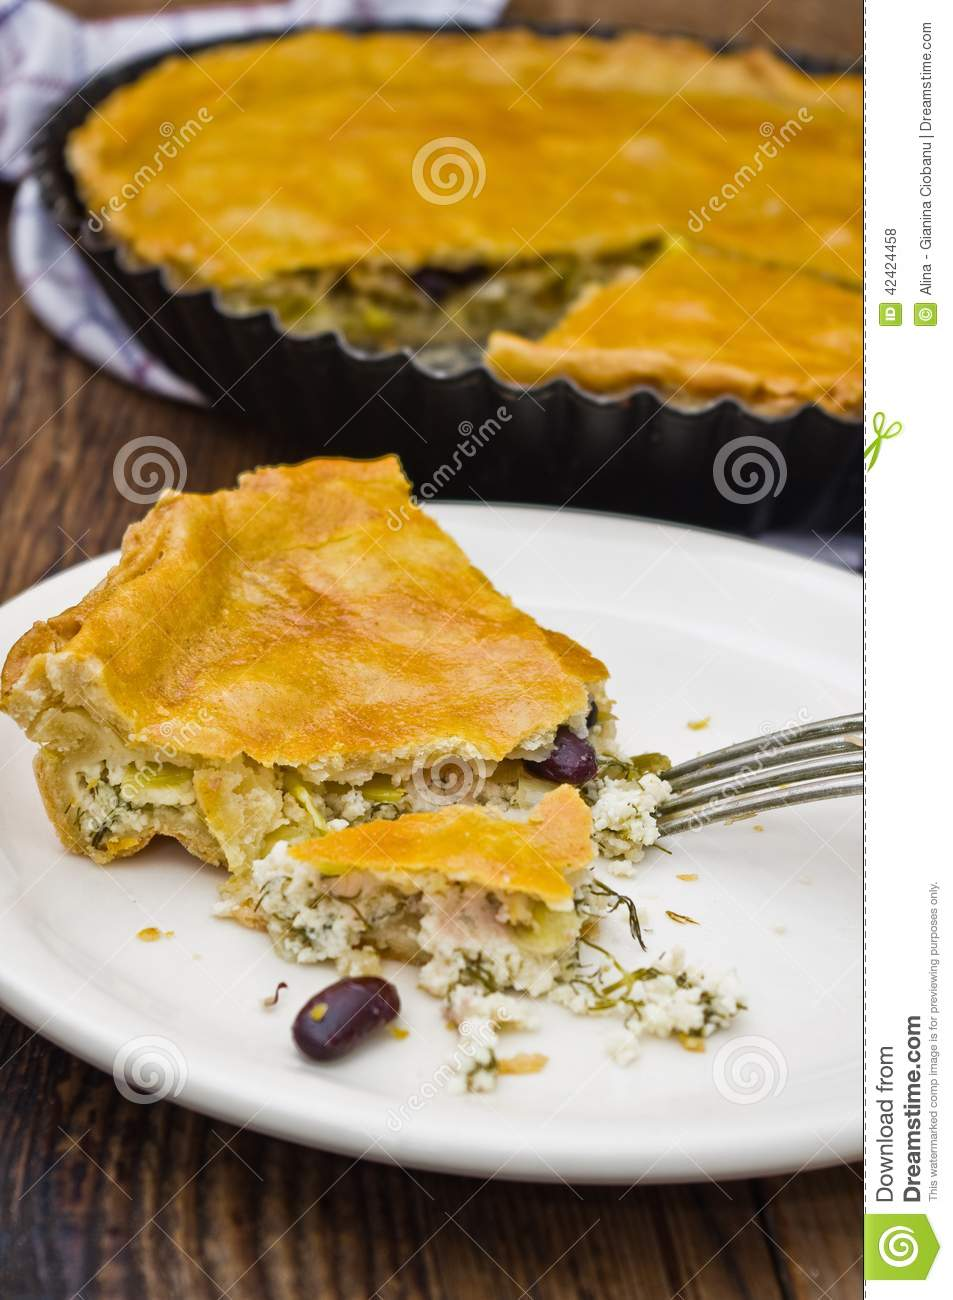 Cheese Tart With Leek And Red Beans Stock Photo - Image ...